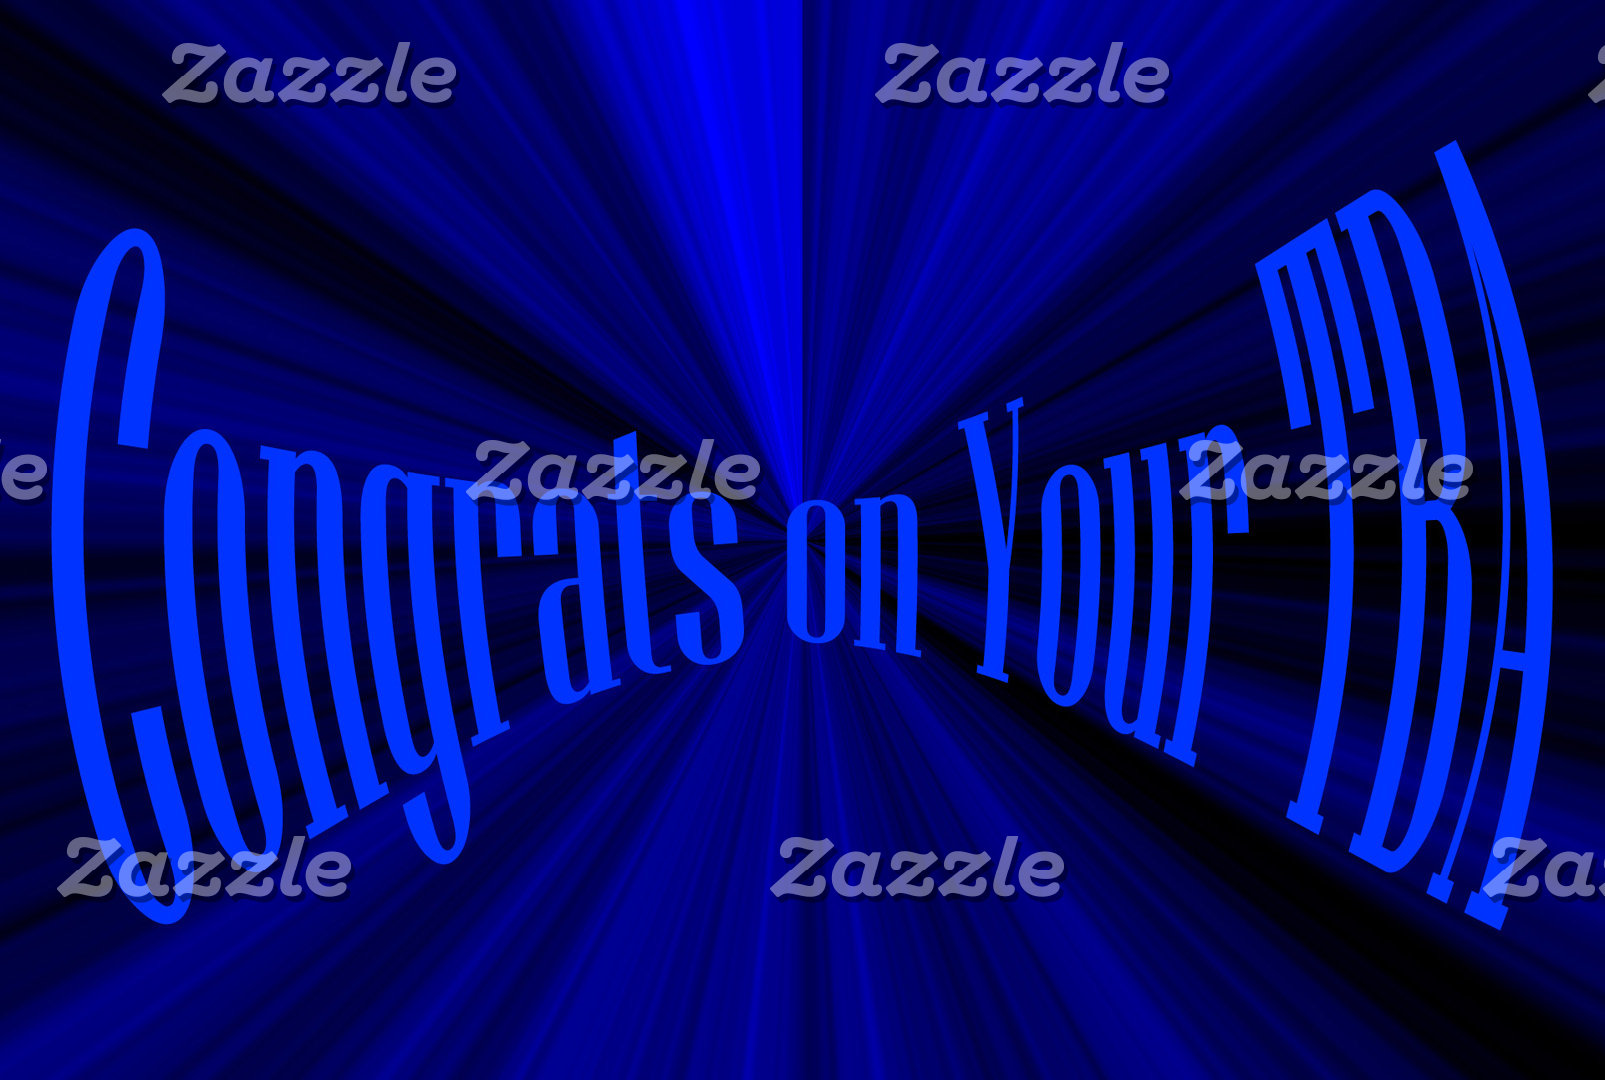 congratulations on your today's best award blue.jp